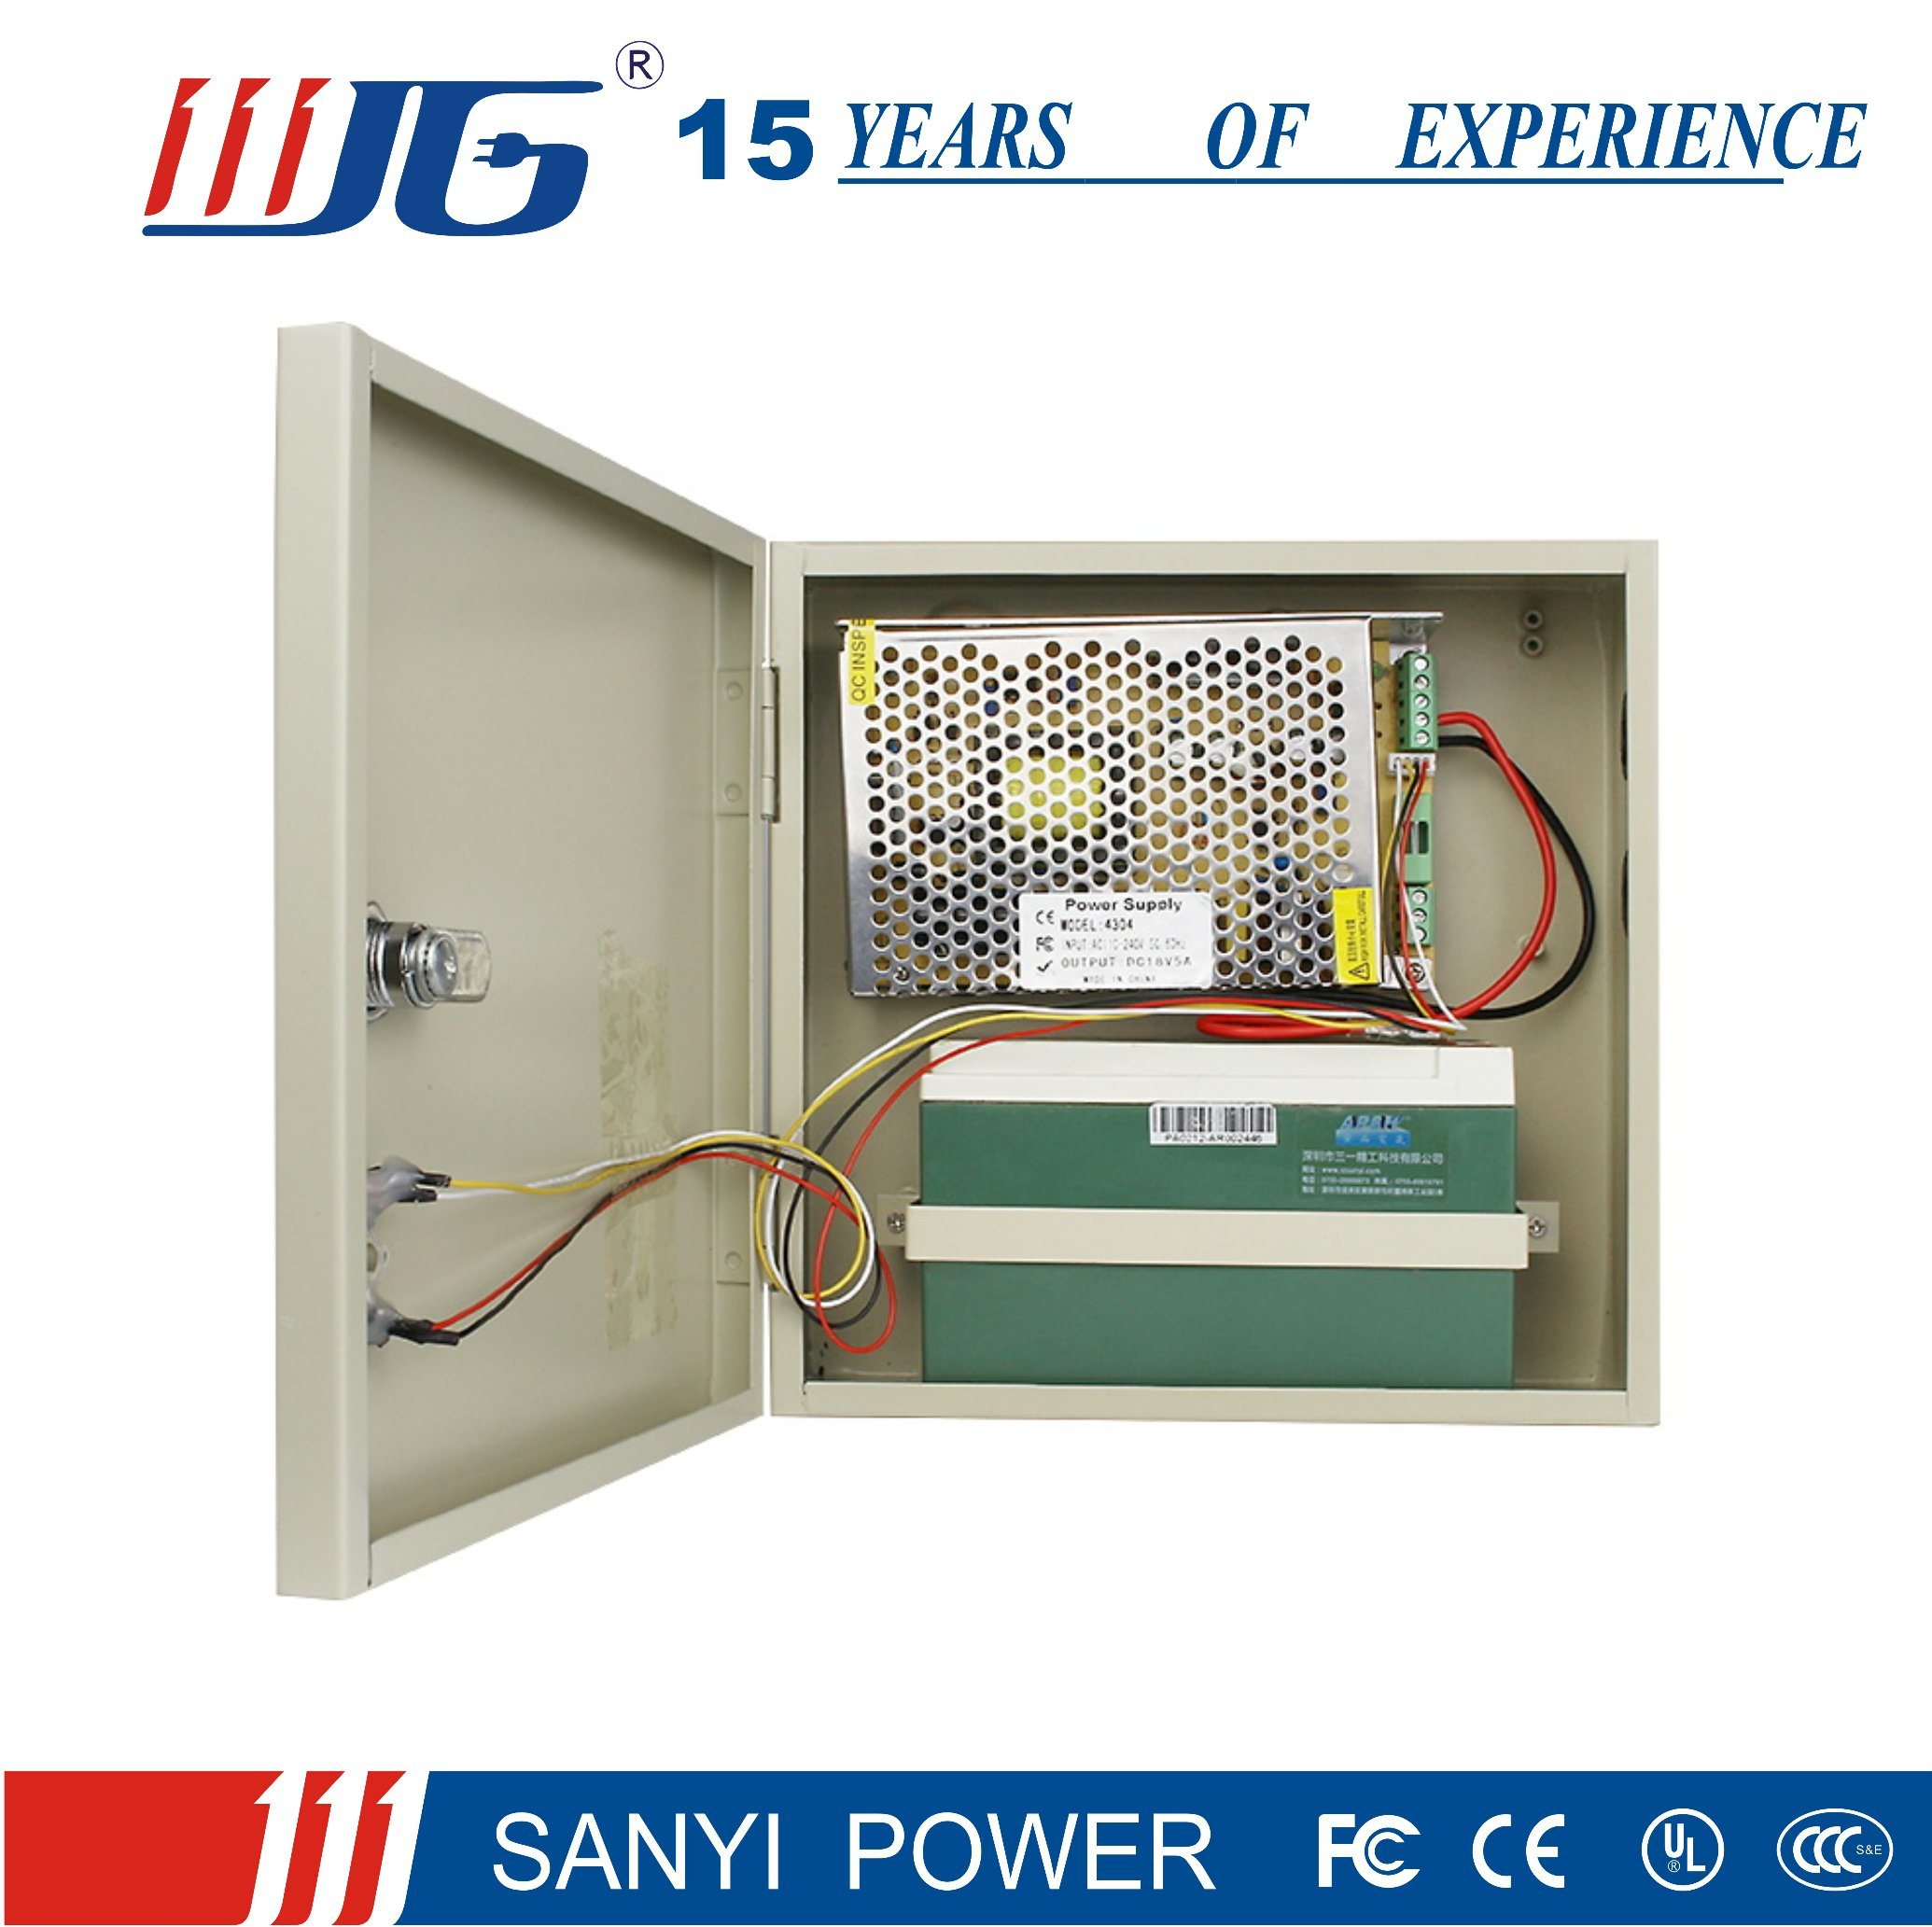 Tl494 Power Supply Circuit In Addition Etd59 13 8v 40a Switch Laser Flash Tube Diagram Tradeoficcom China 12v 3a 5a 10a Access Control With Ups Schematic